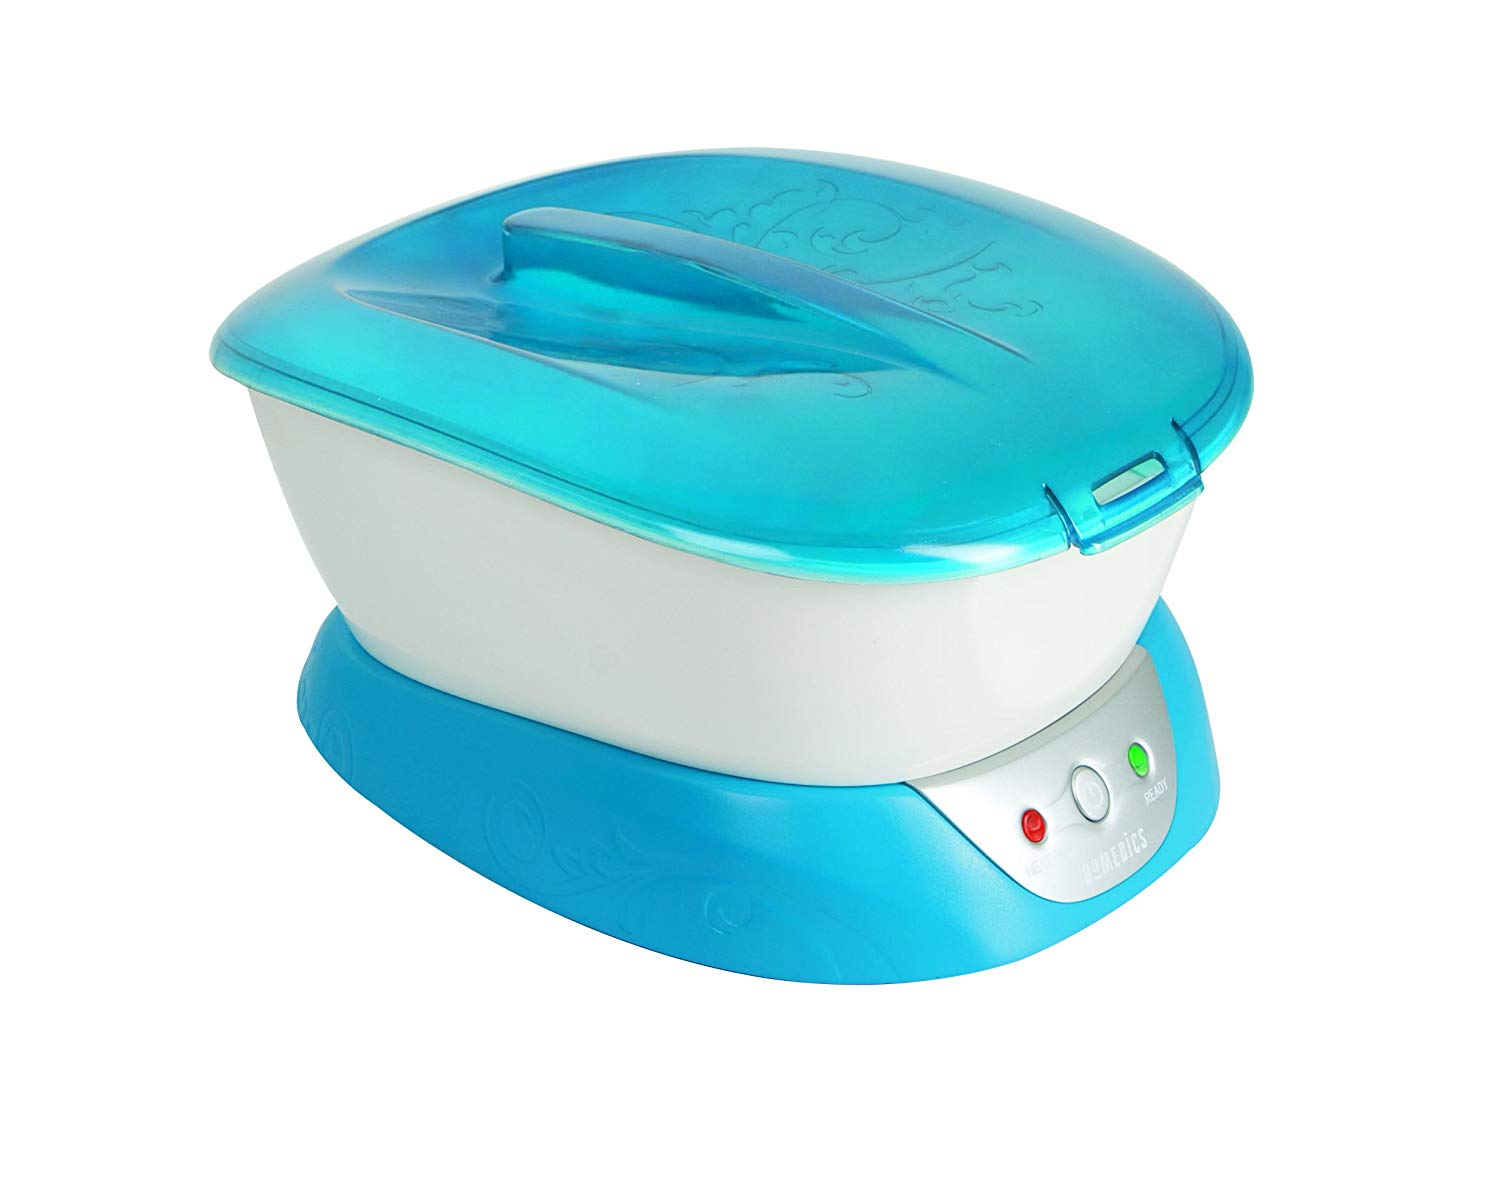 9. HoMedics Thera-P Paraspa Plus Paraffin Bath: